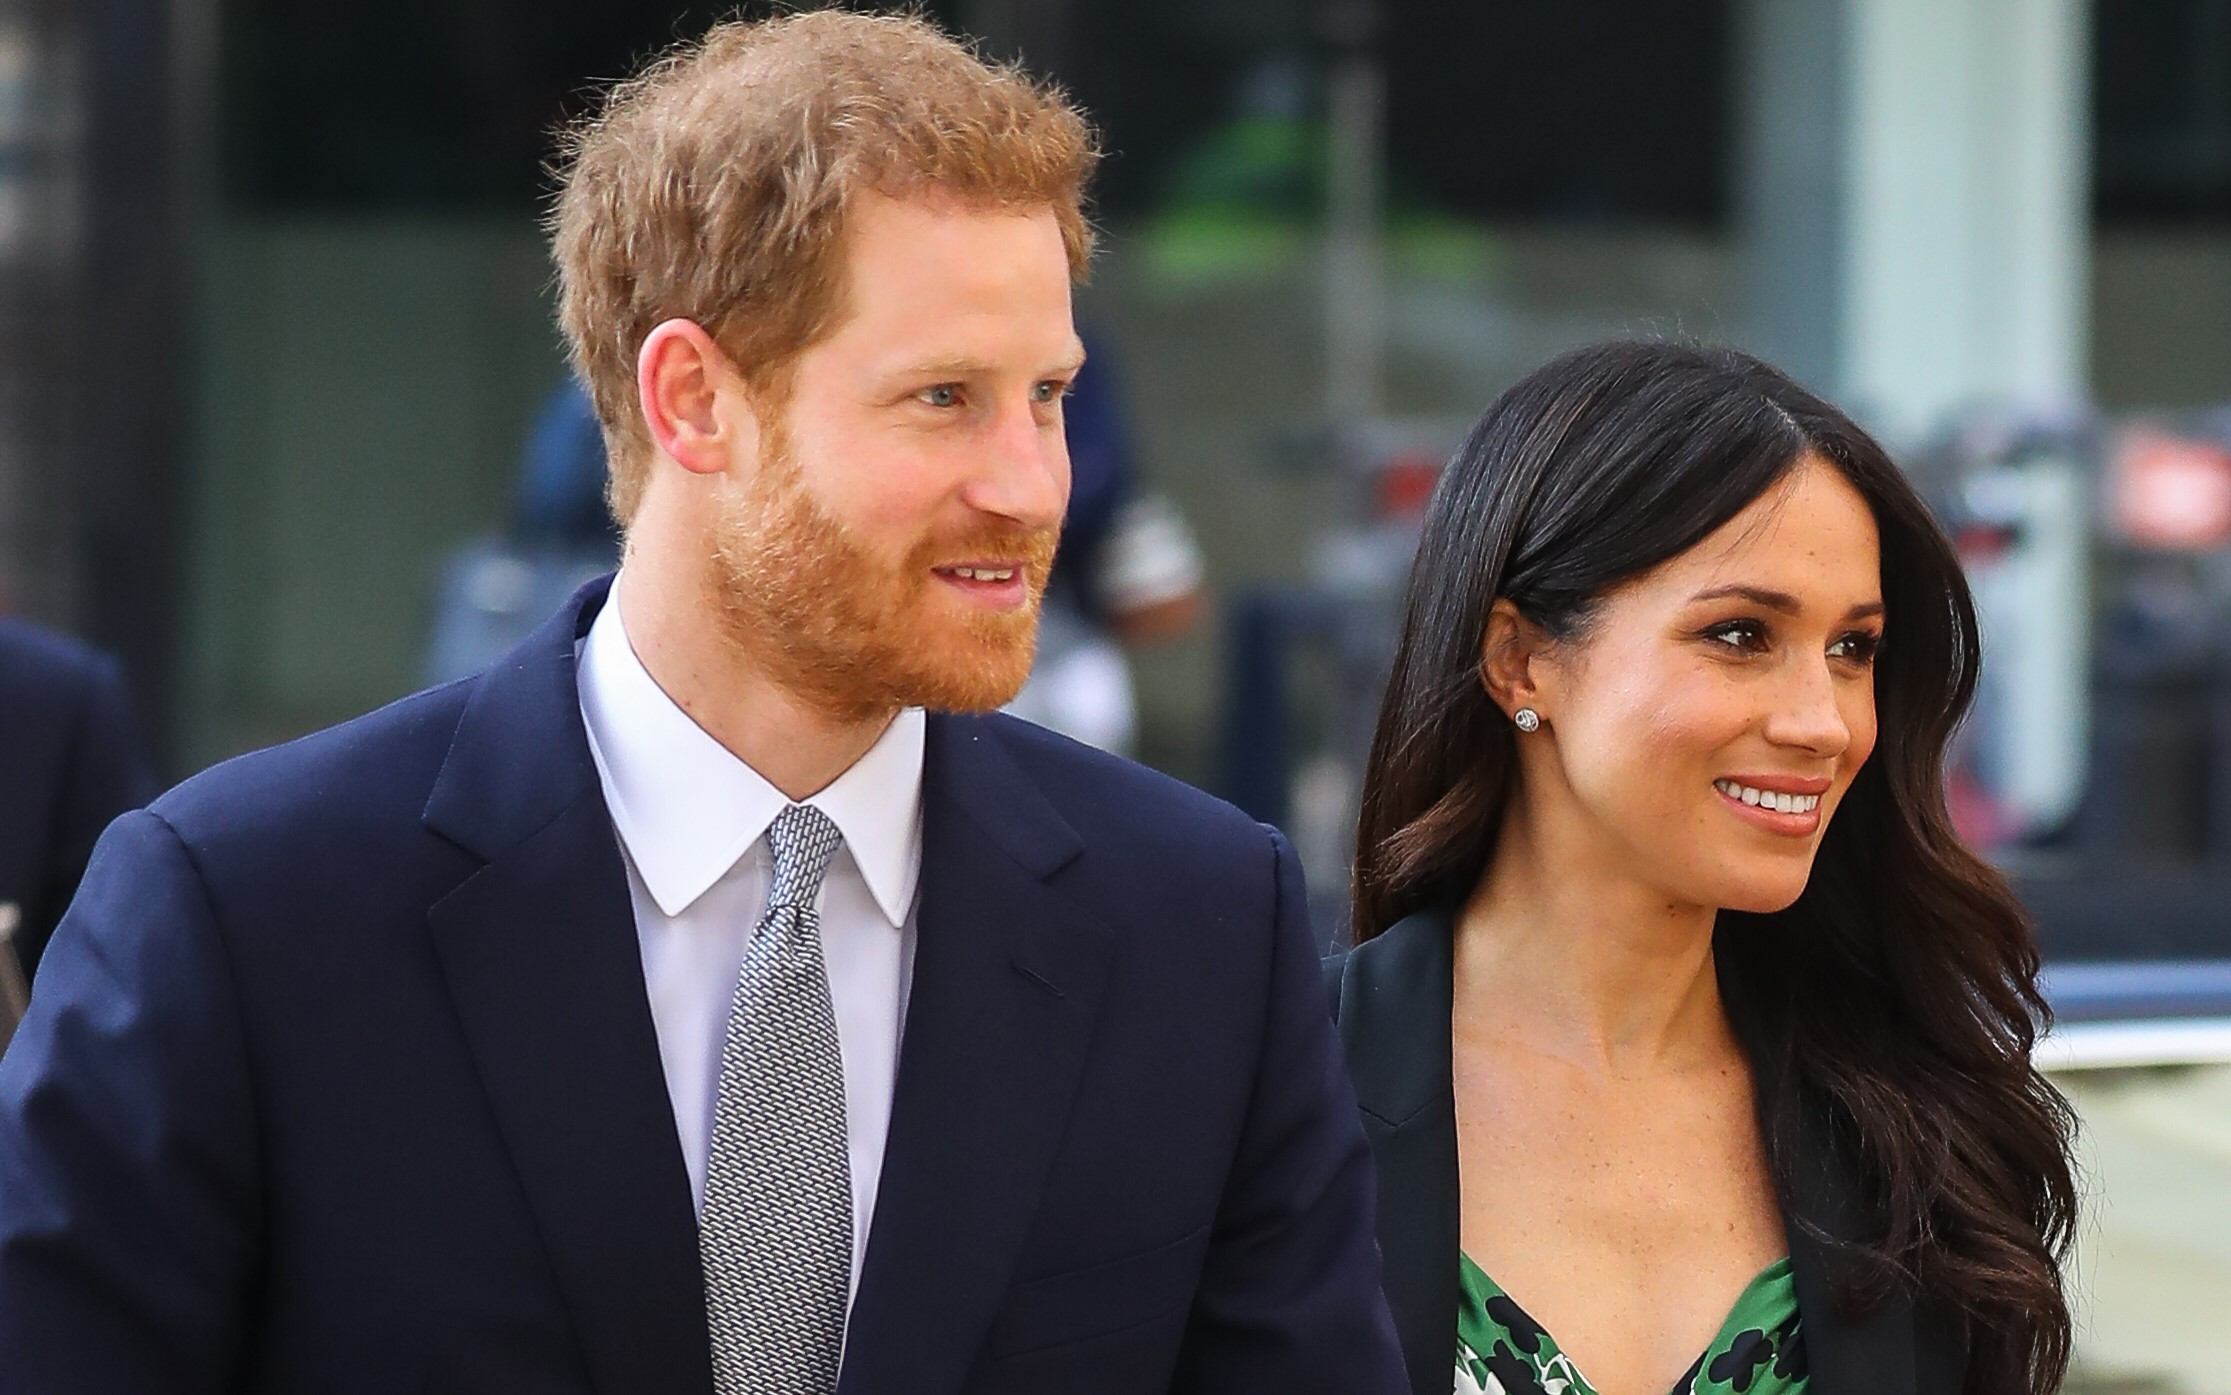 First look at Prince Harry and Meghan Markle's wedding cake